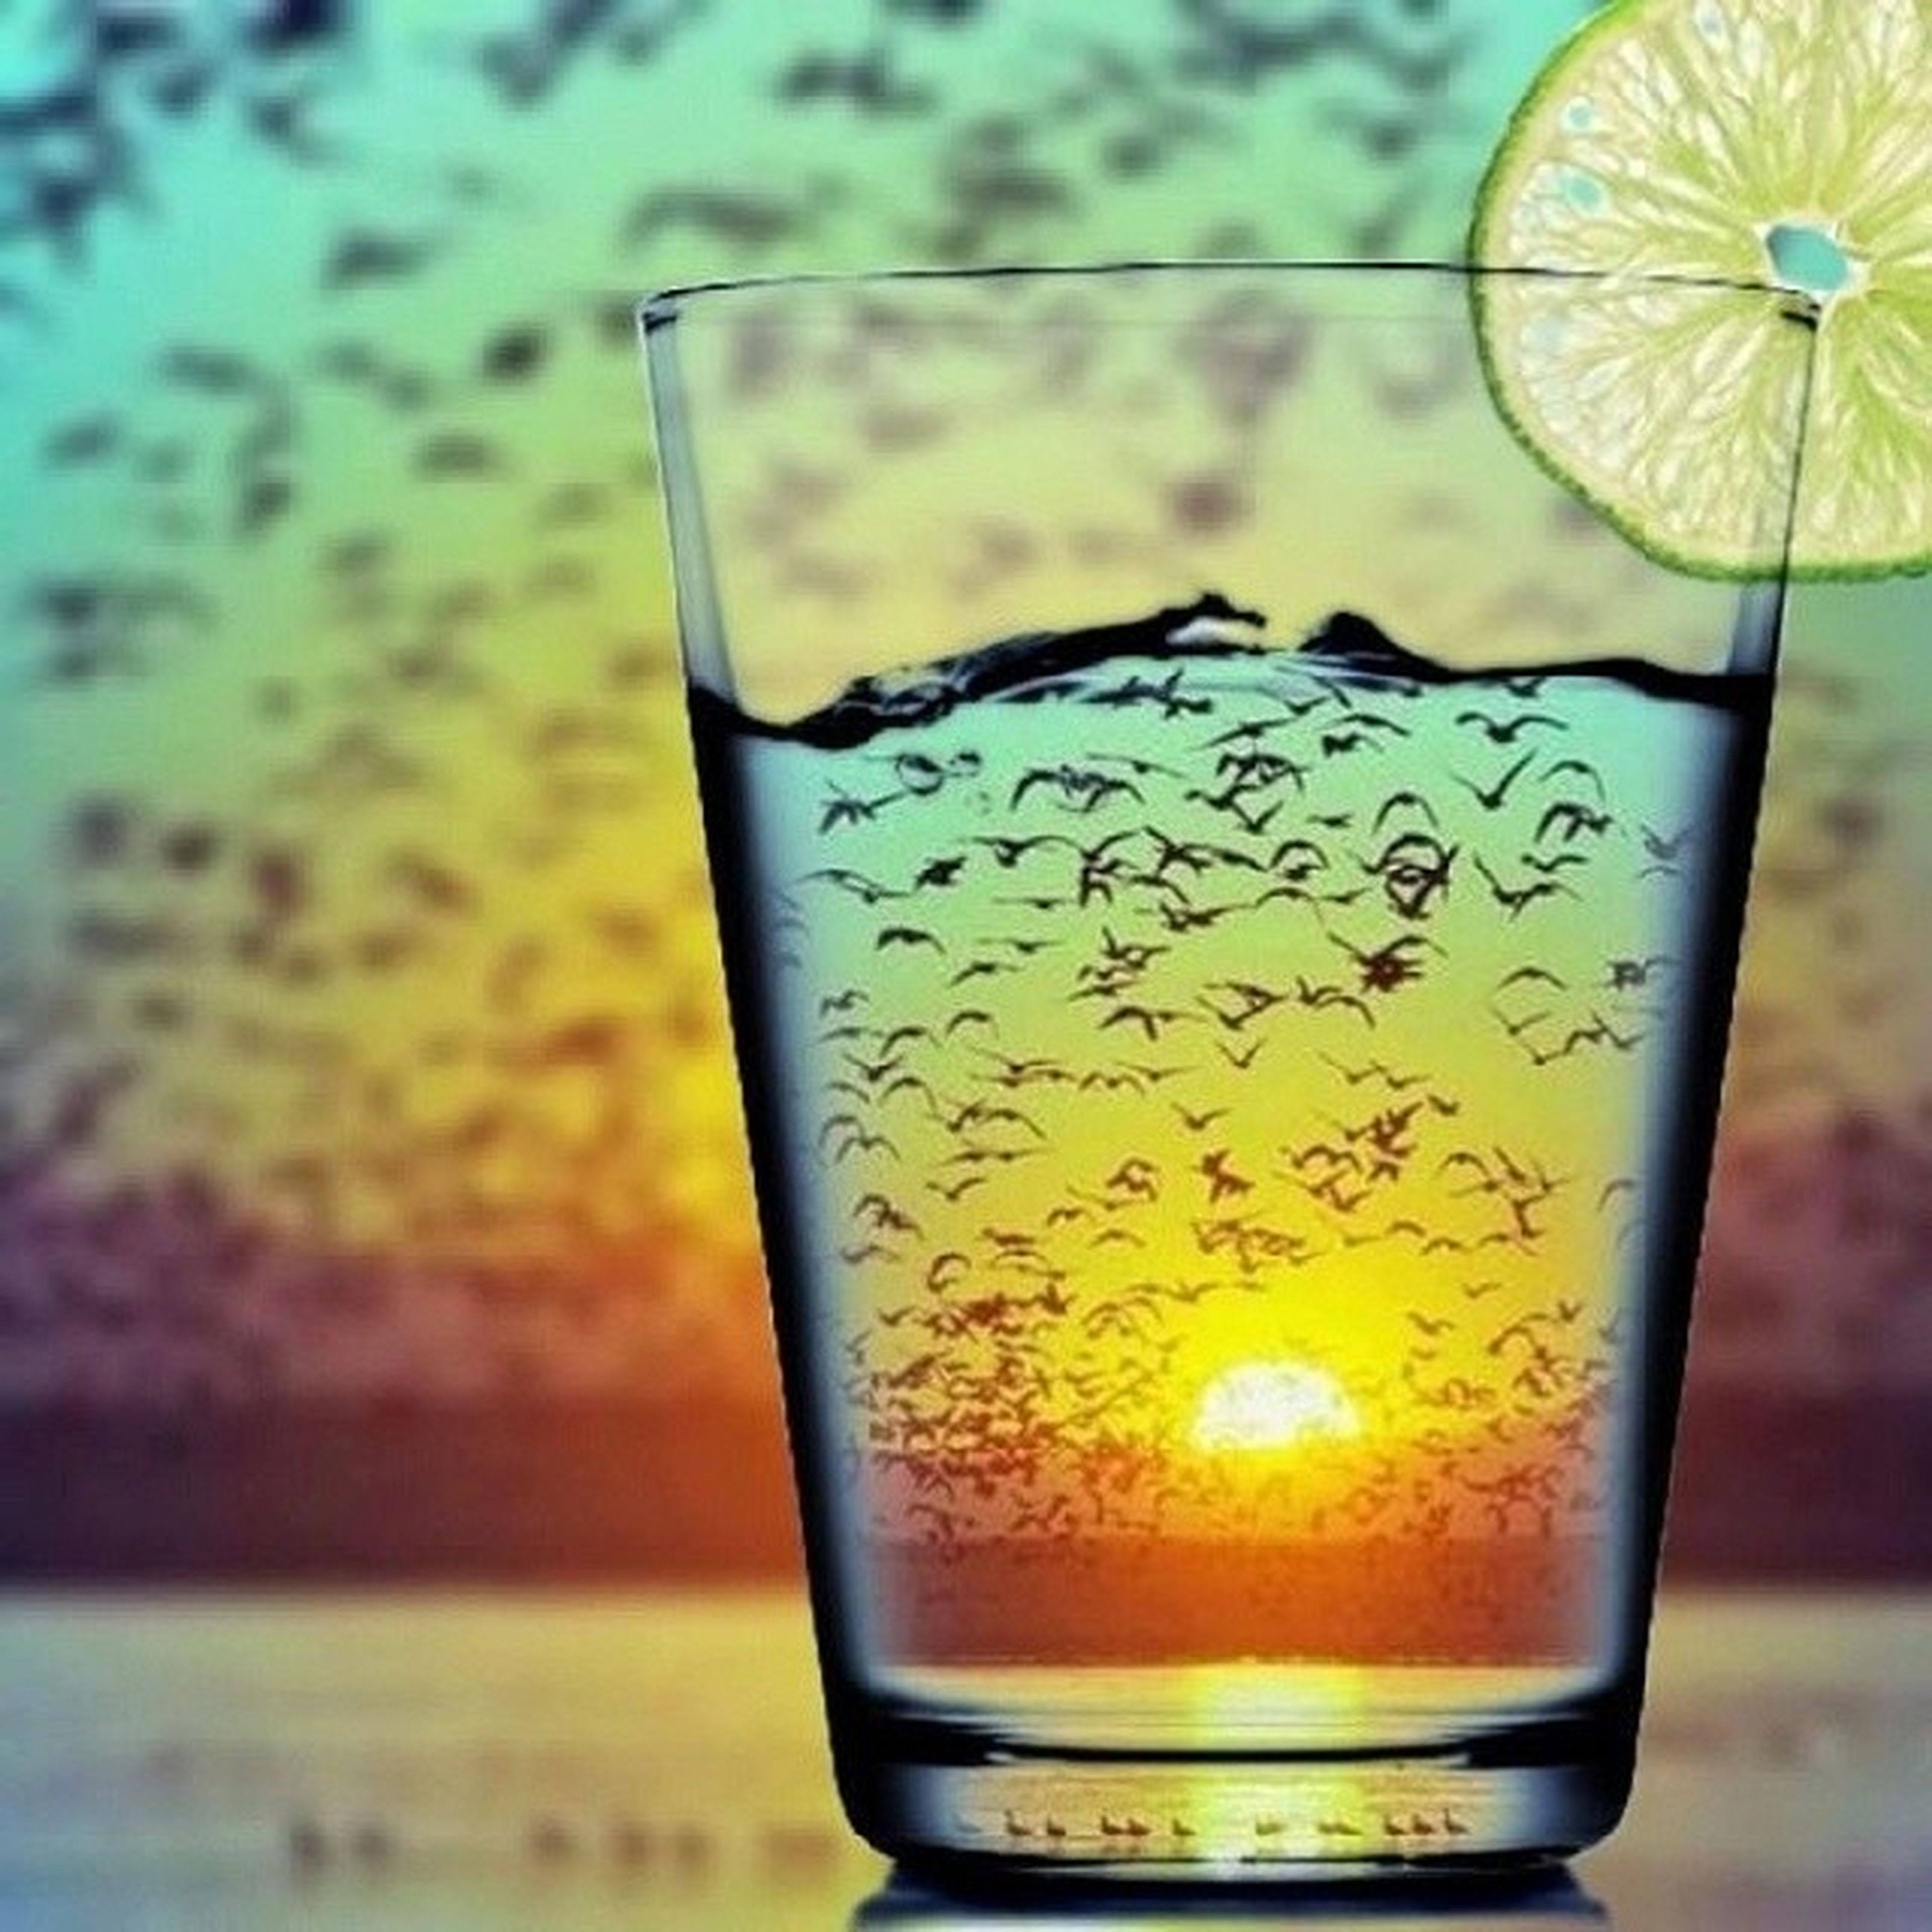 close-up, drink, glass - material, focus on foreground, transparent, refreshment, freshness, sunset, food and drink, drinking glass, indoors, glass, still life, orange color, yellow, alcohol, table, no people, fragility, single object